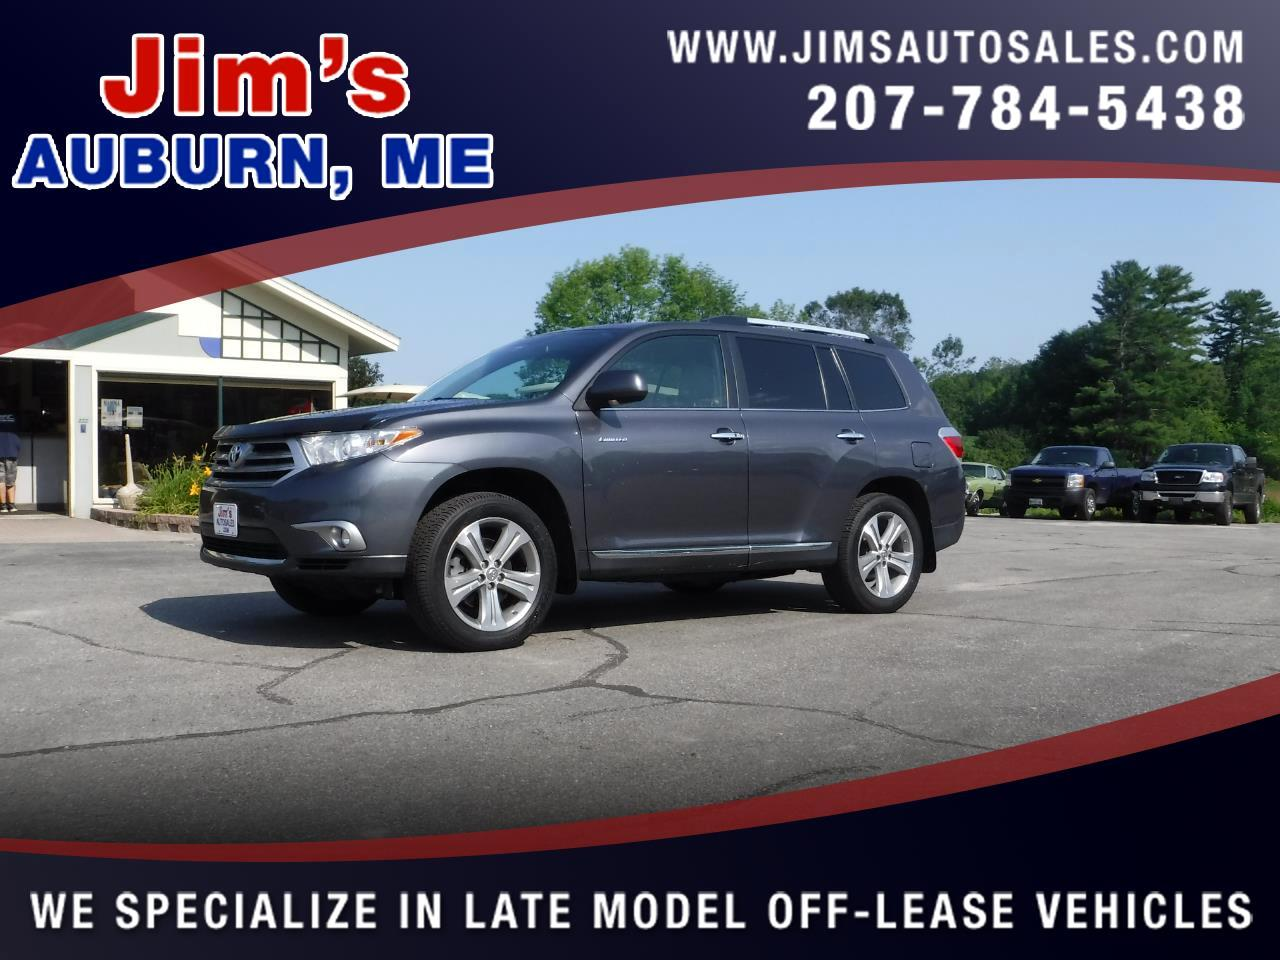 2013 Toyota Highlander 4WD 4dr V6  Limited (Natl)